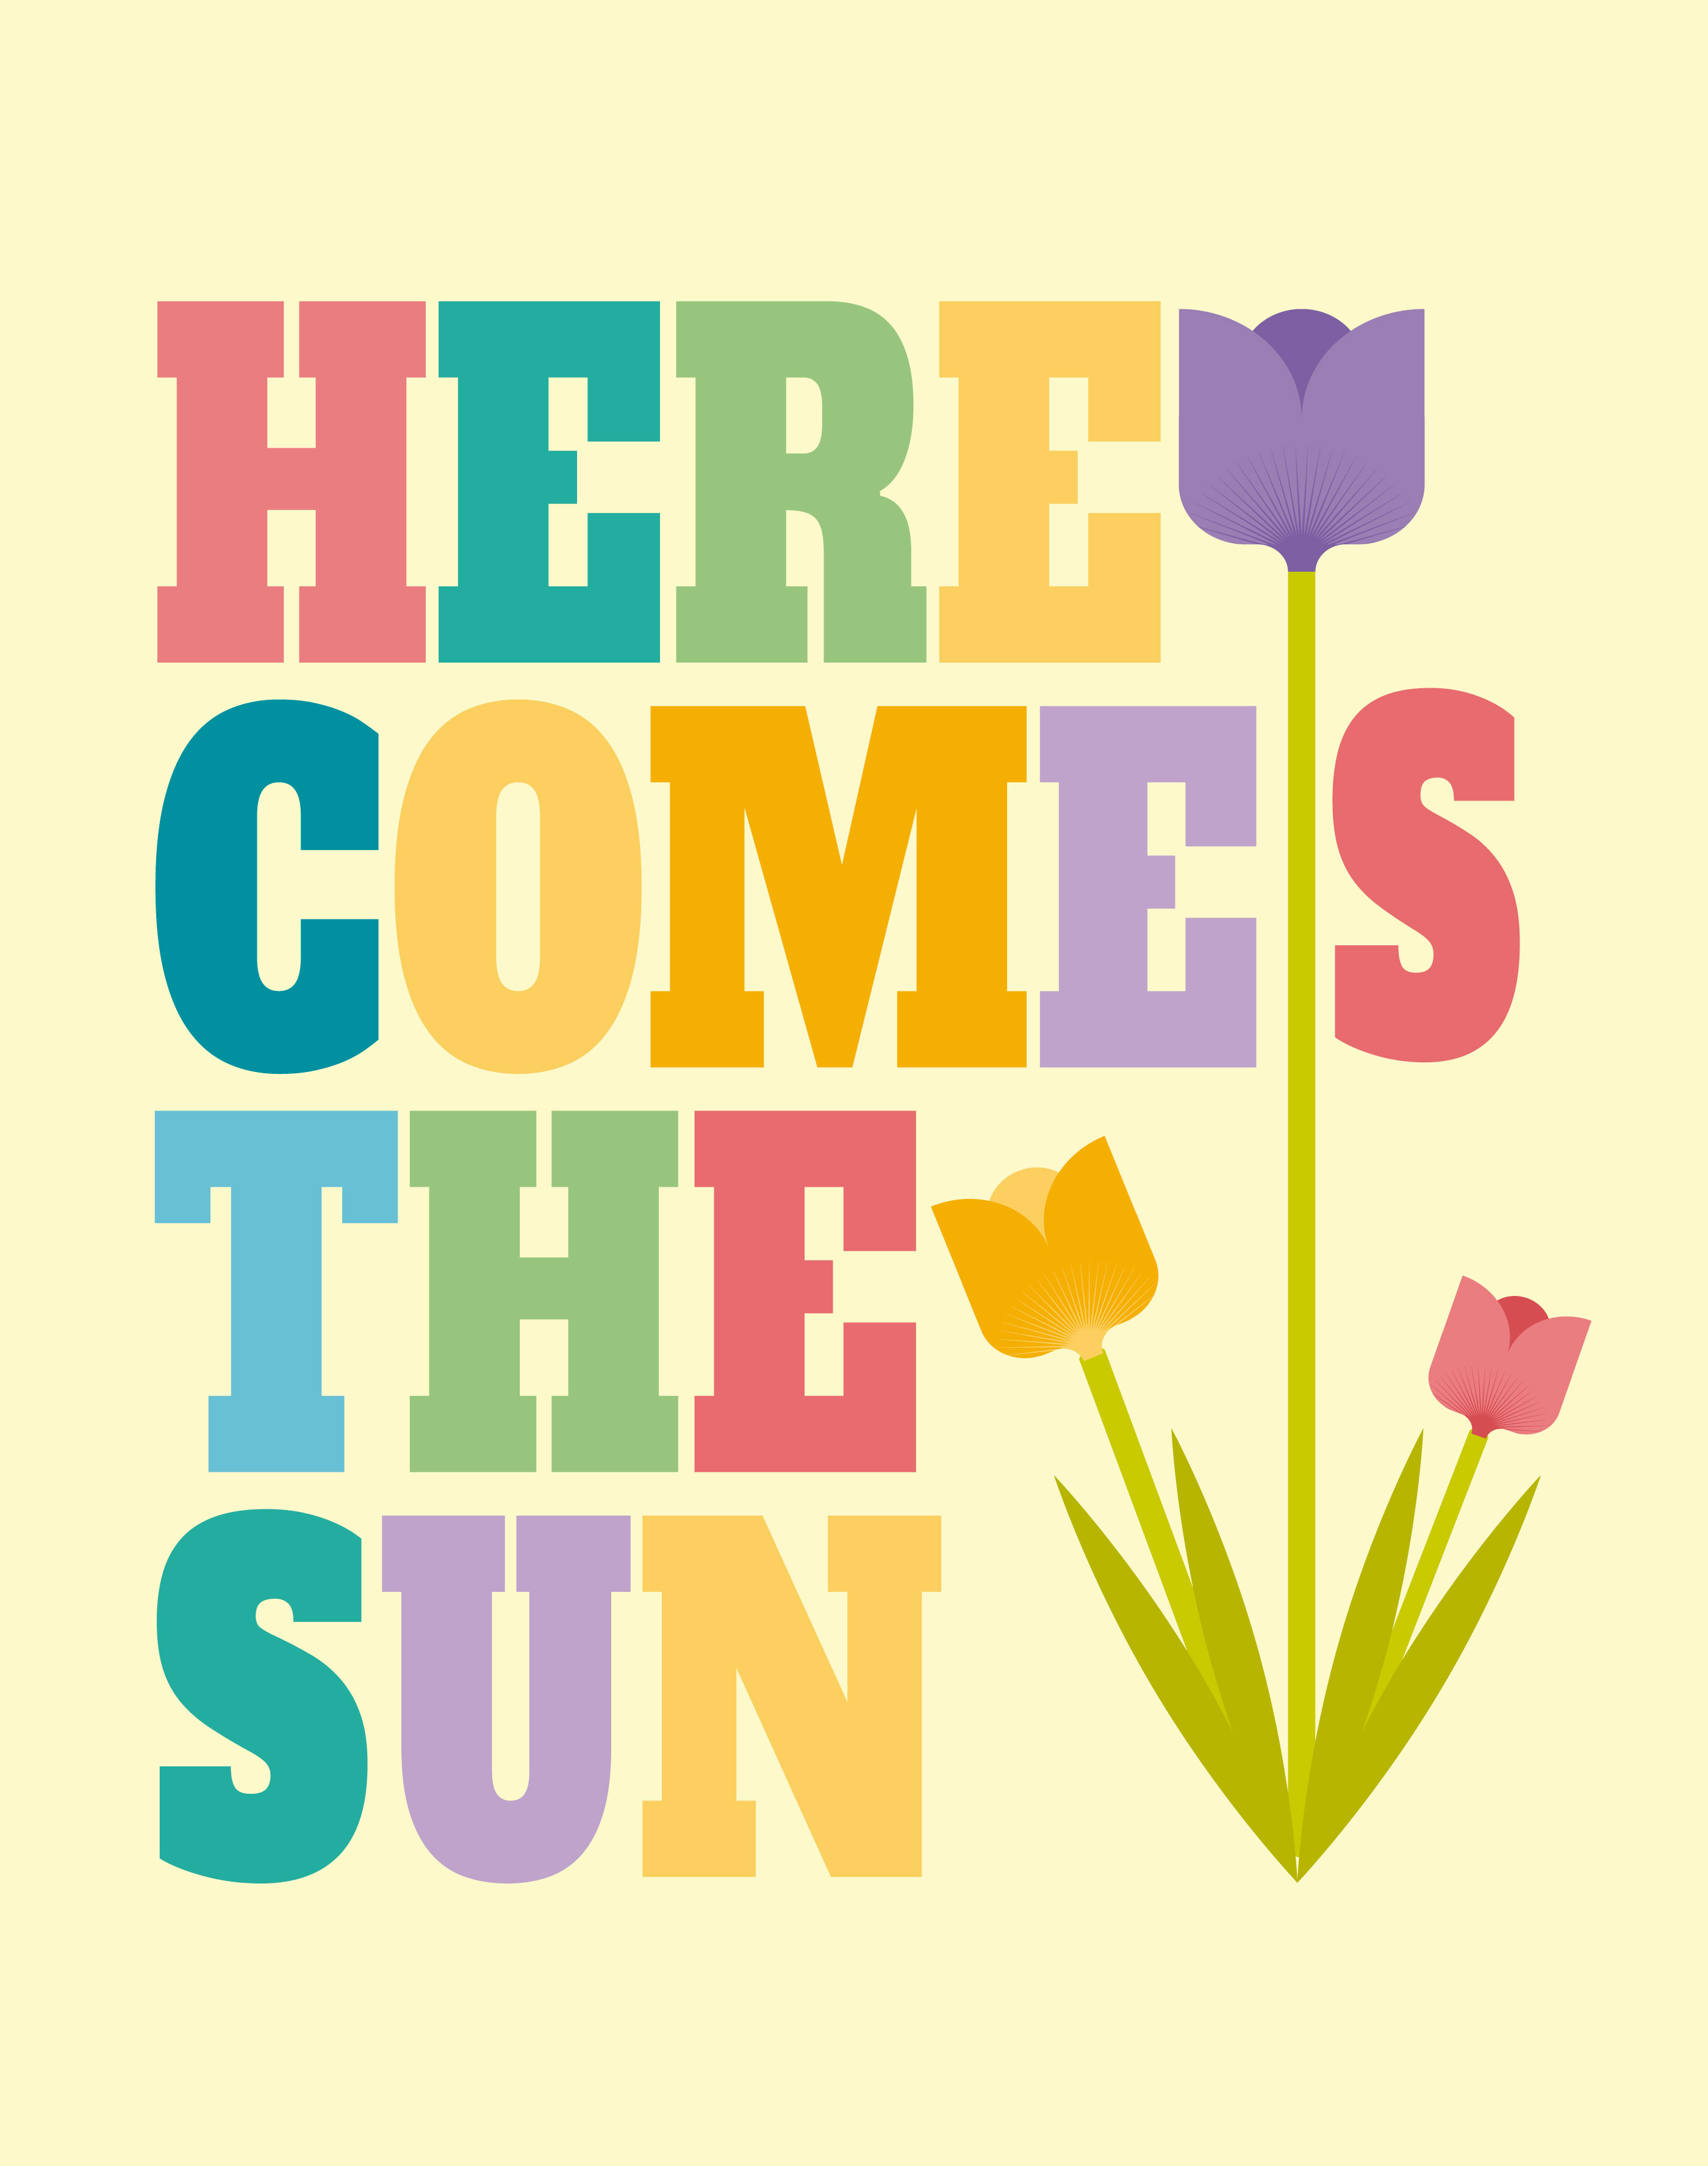 Here Comes The Sun Wall Art Poster - Download Free Vector Art, Stock ...